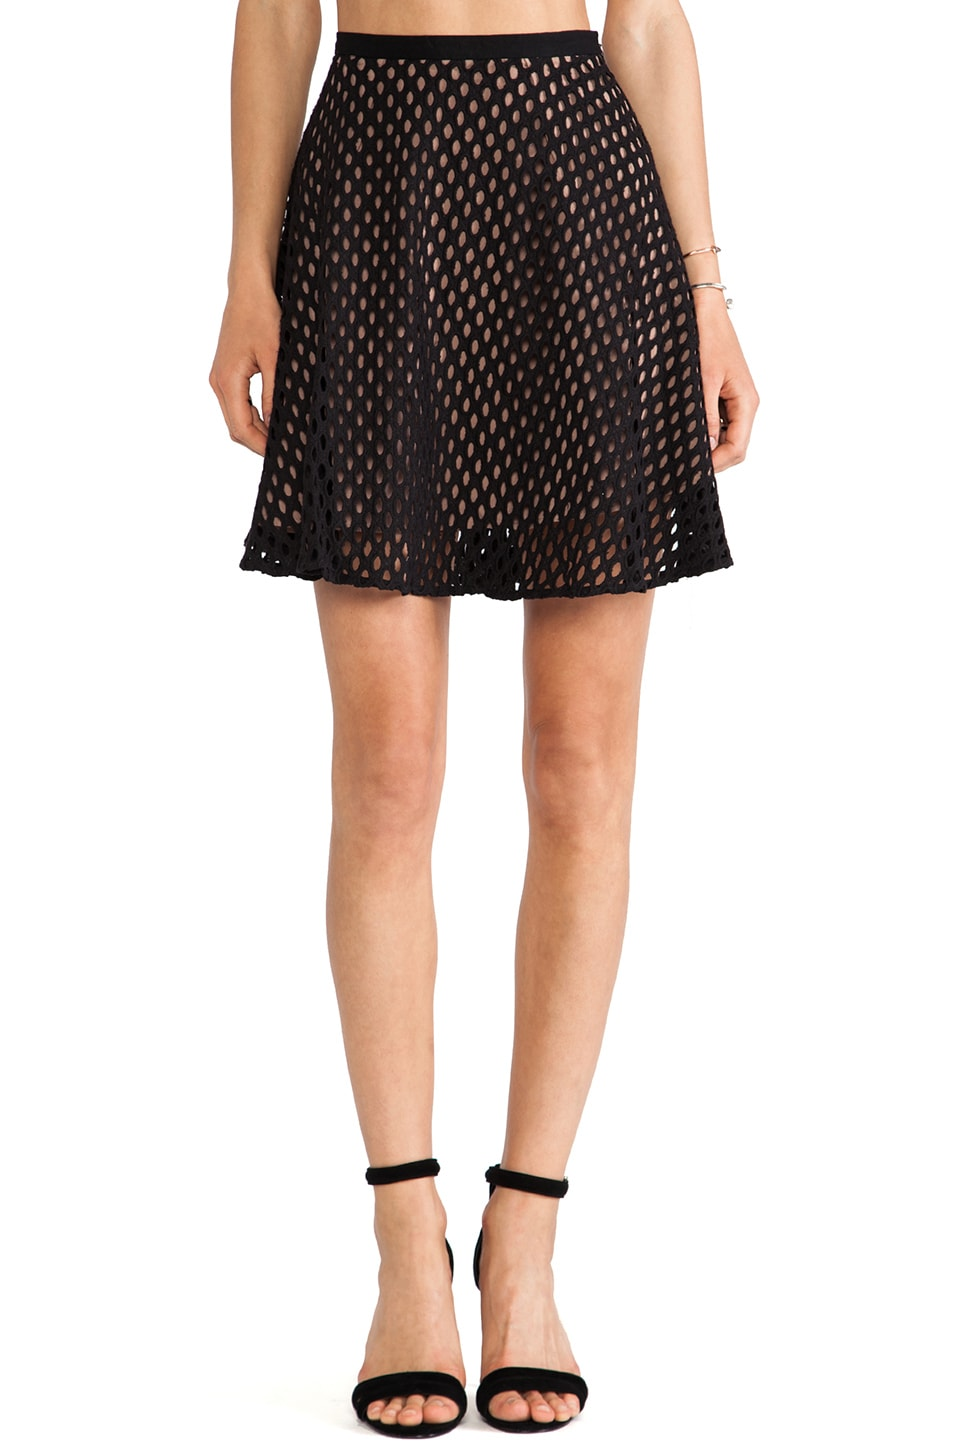 HEARTLOOM Harmon Skirt in Black